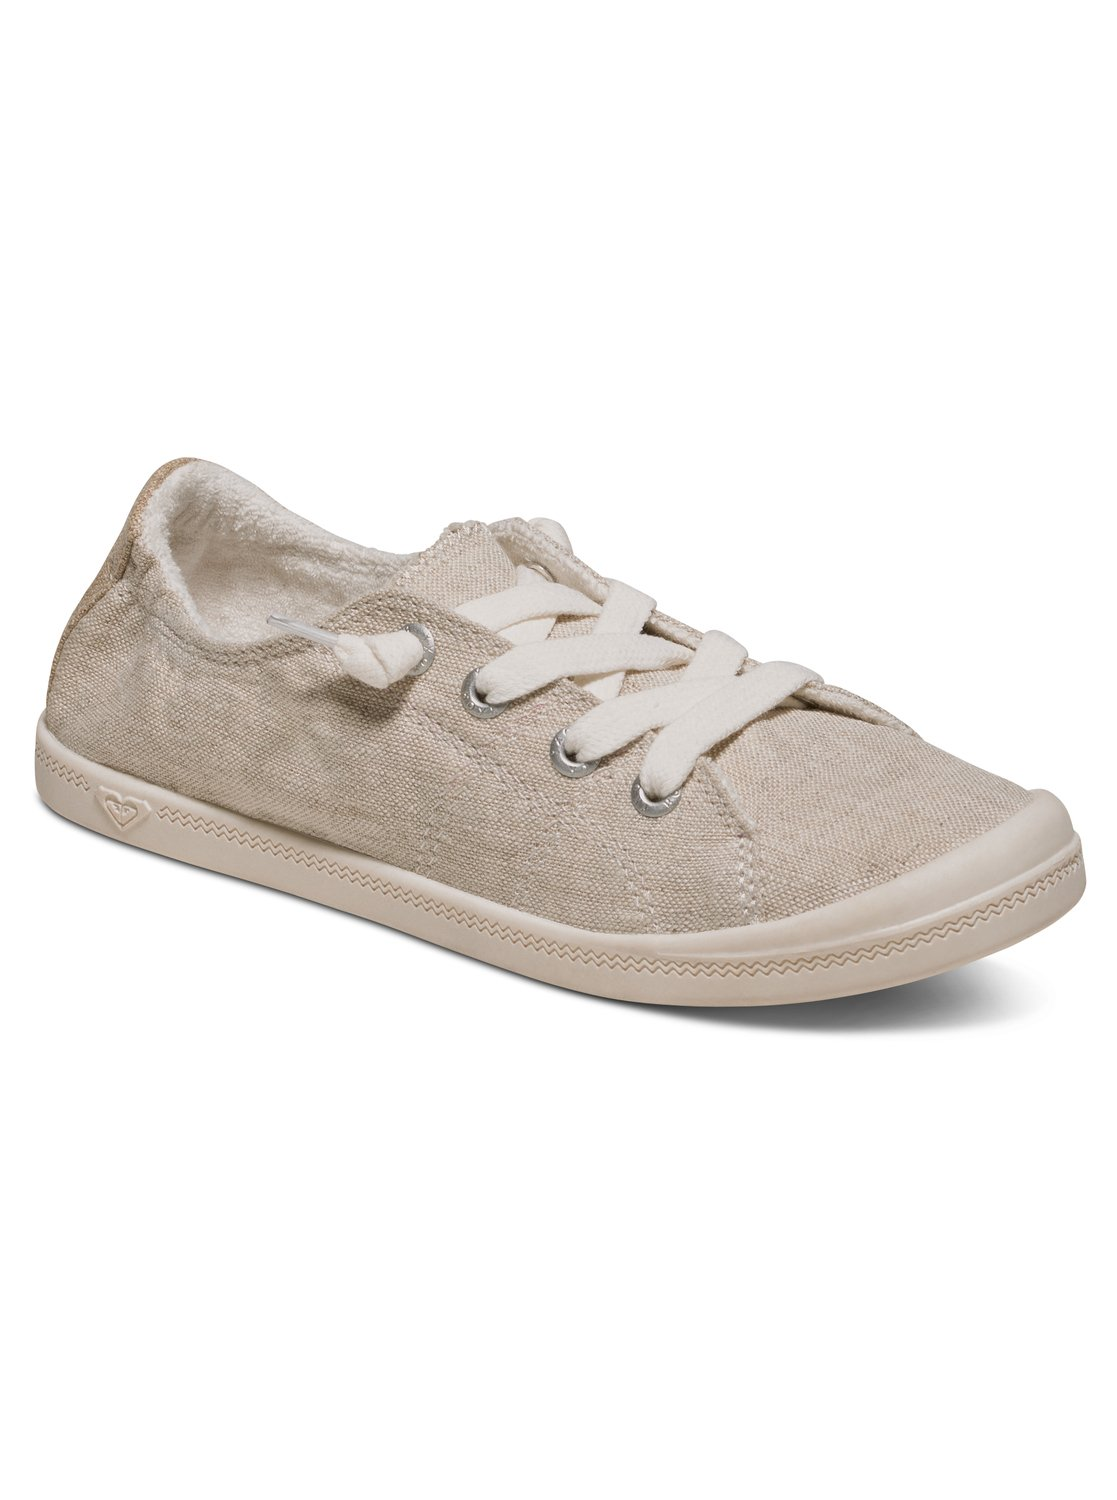 Roxy Shoes Rory Lace Up Shoes 889...